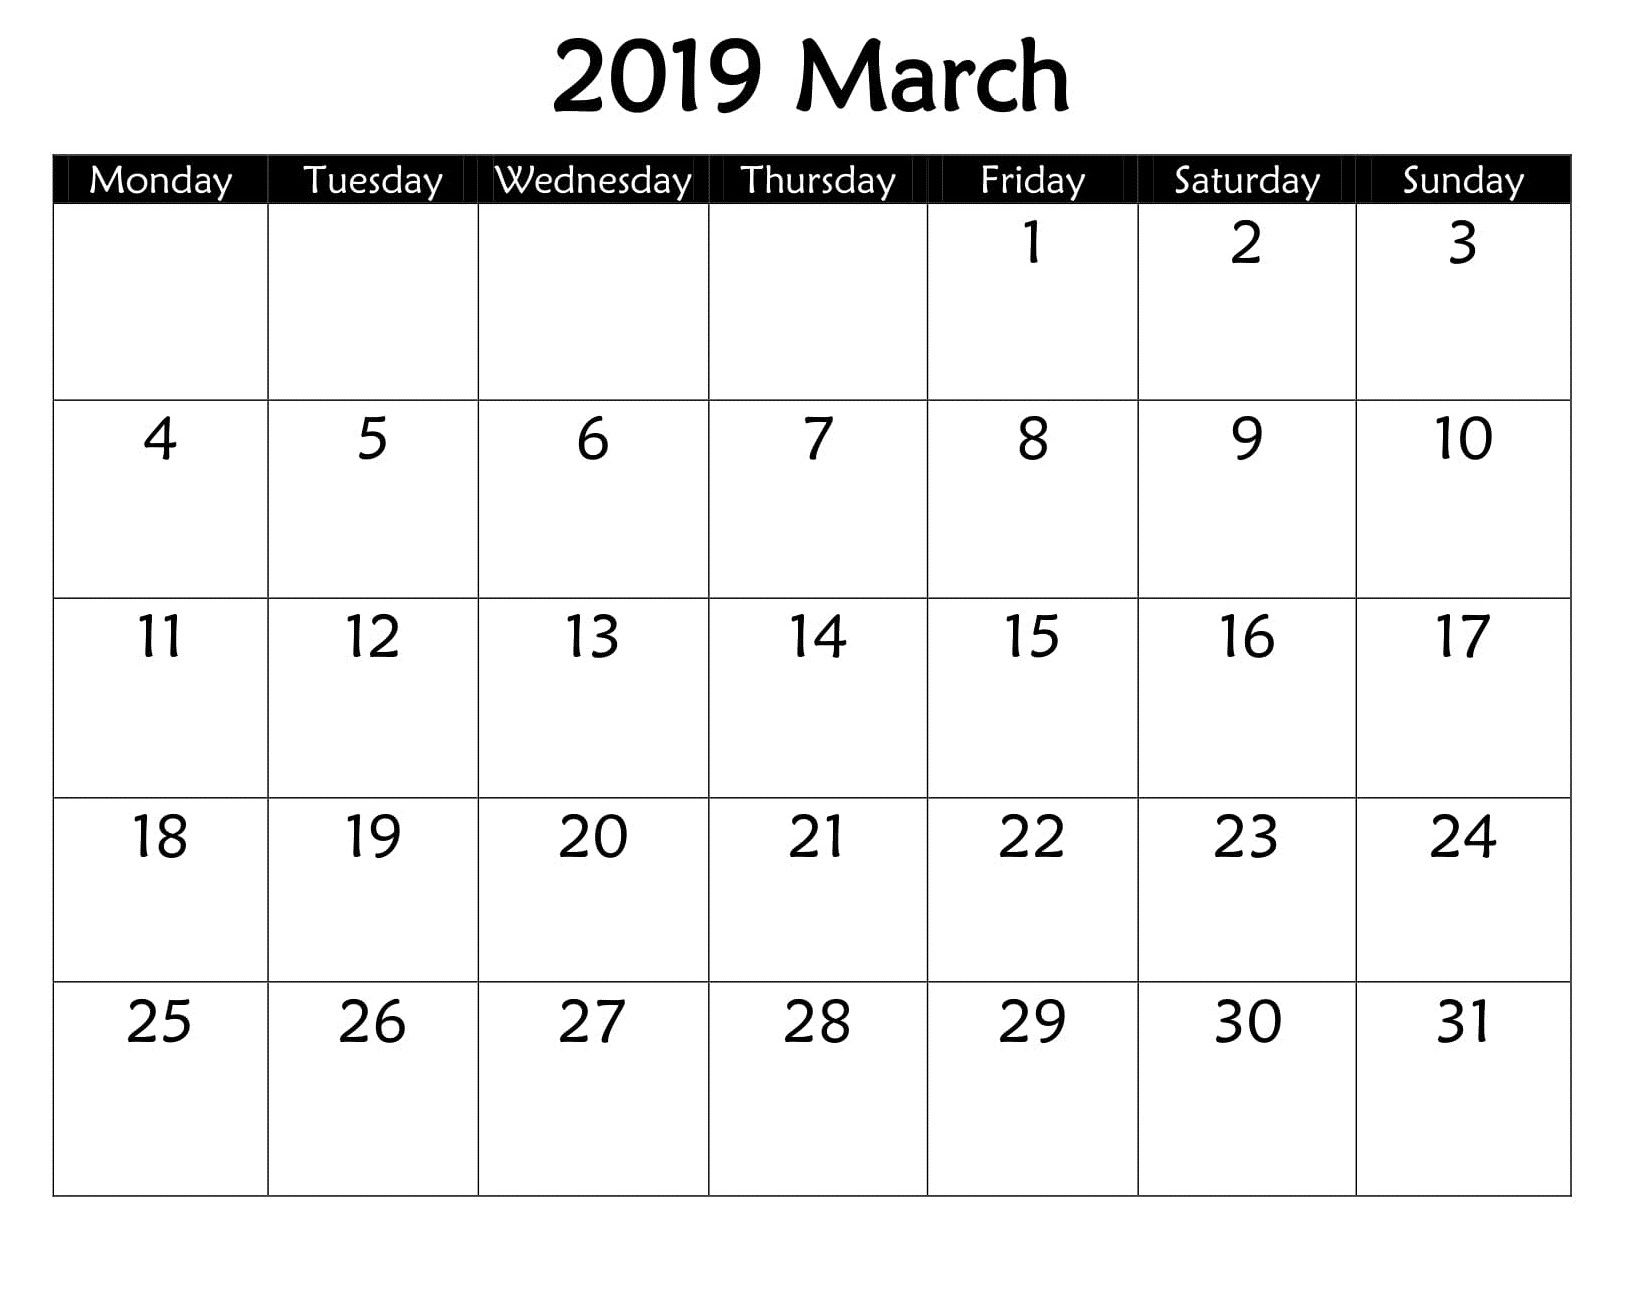 March 2019 Google Spreadsheet Spreadsheet Template Google Spreadsheet Google Calendar